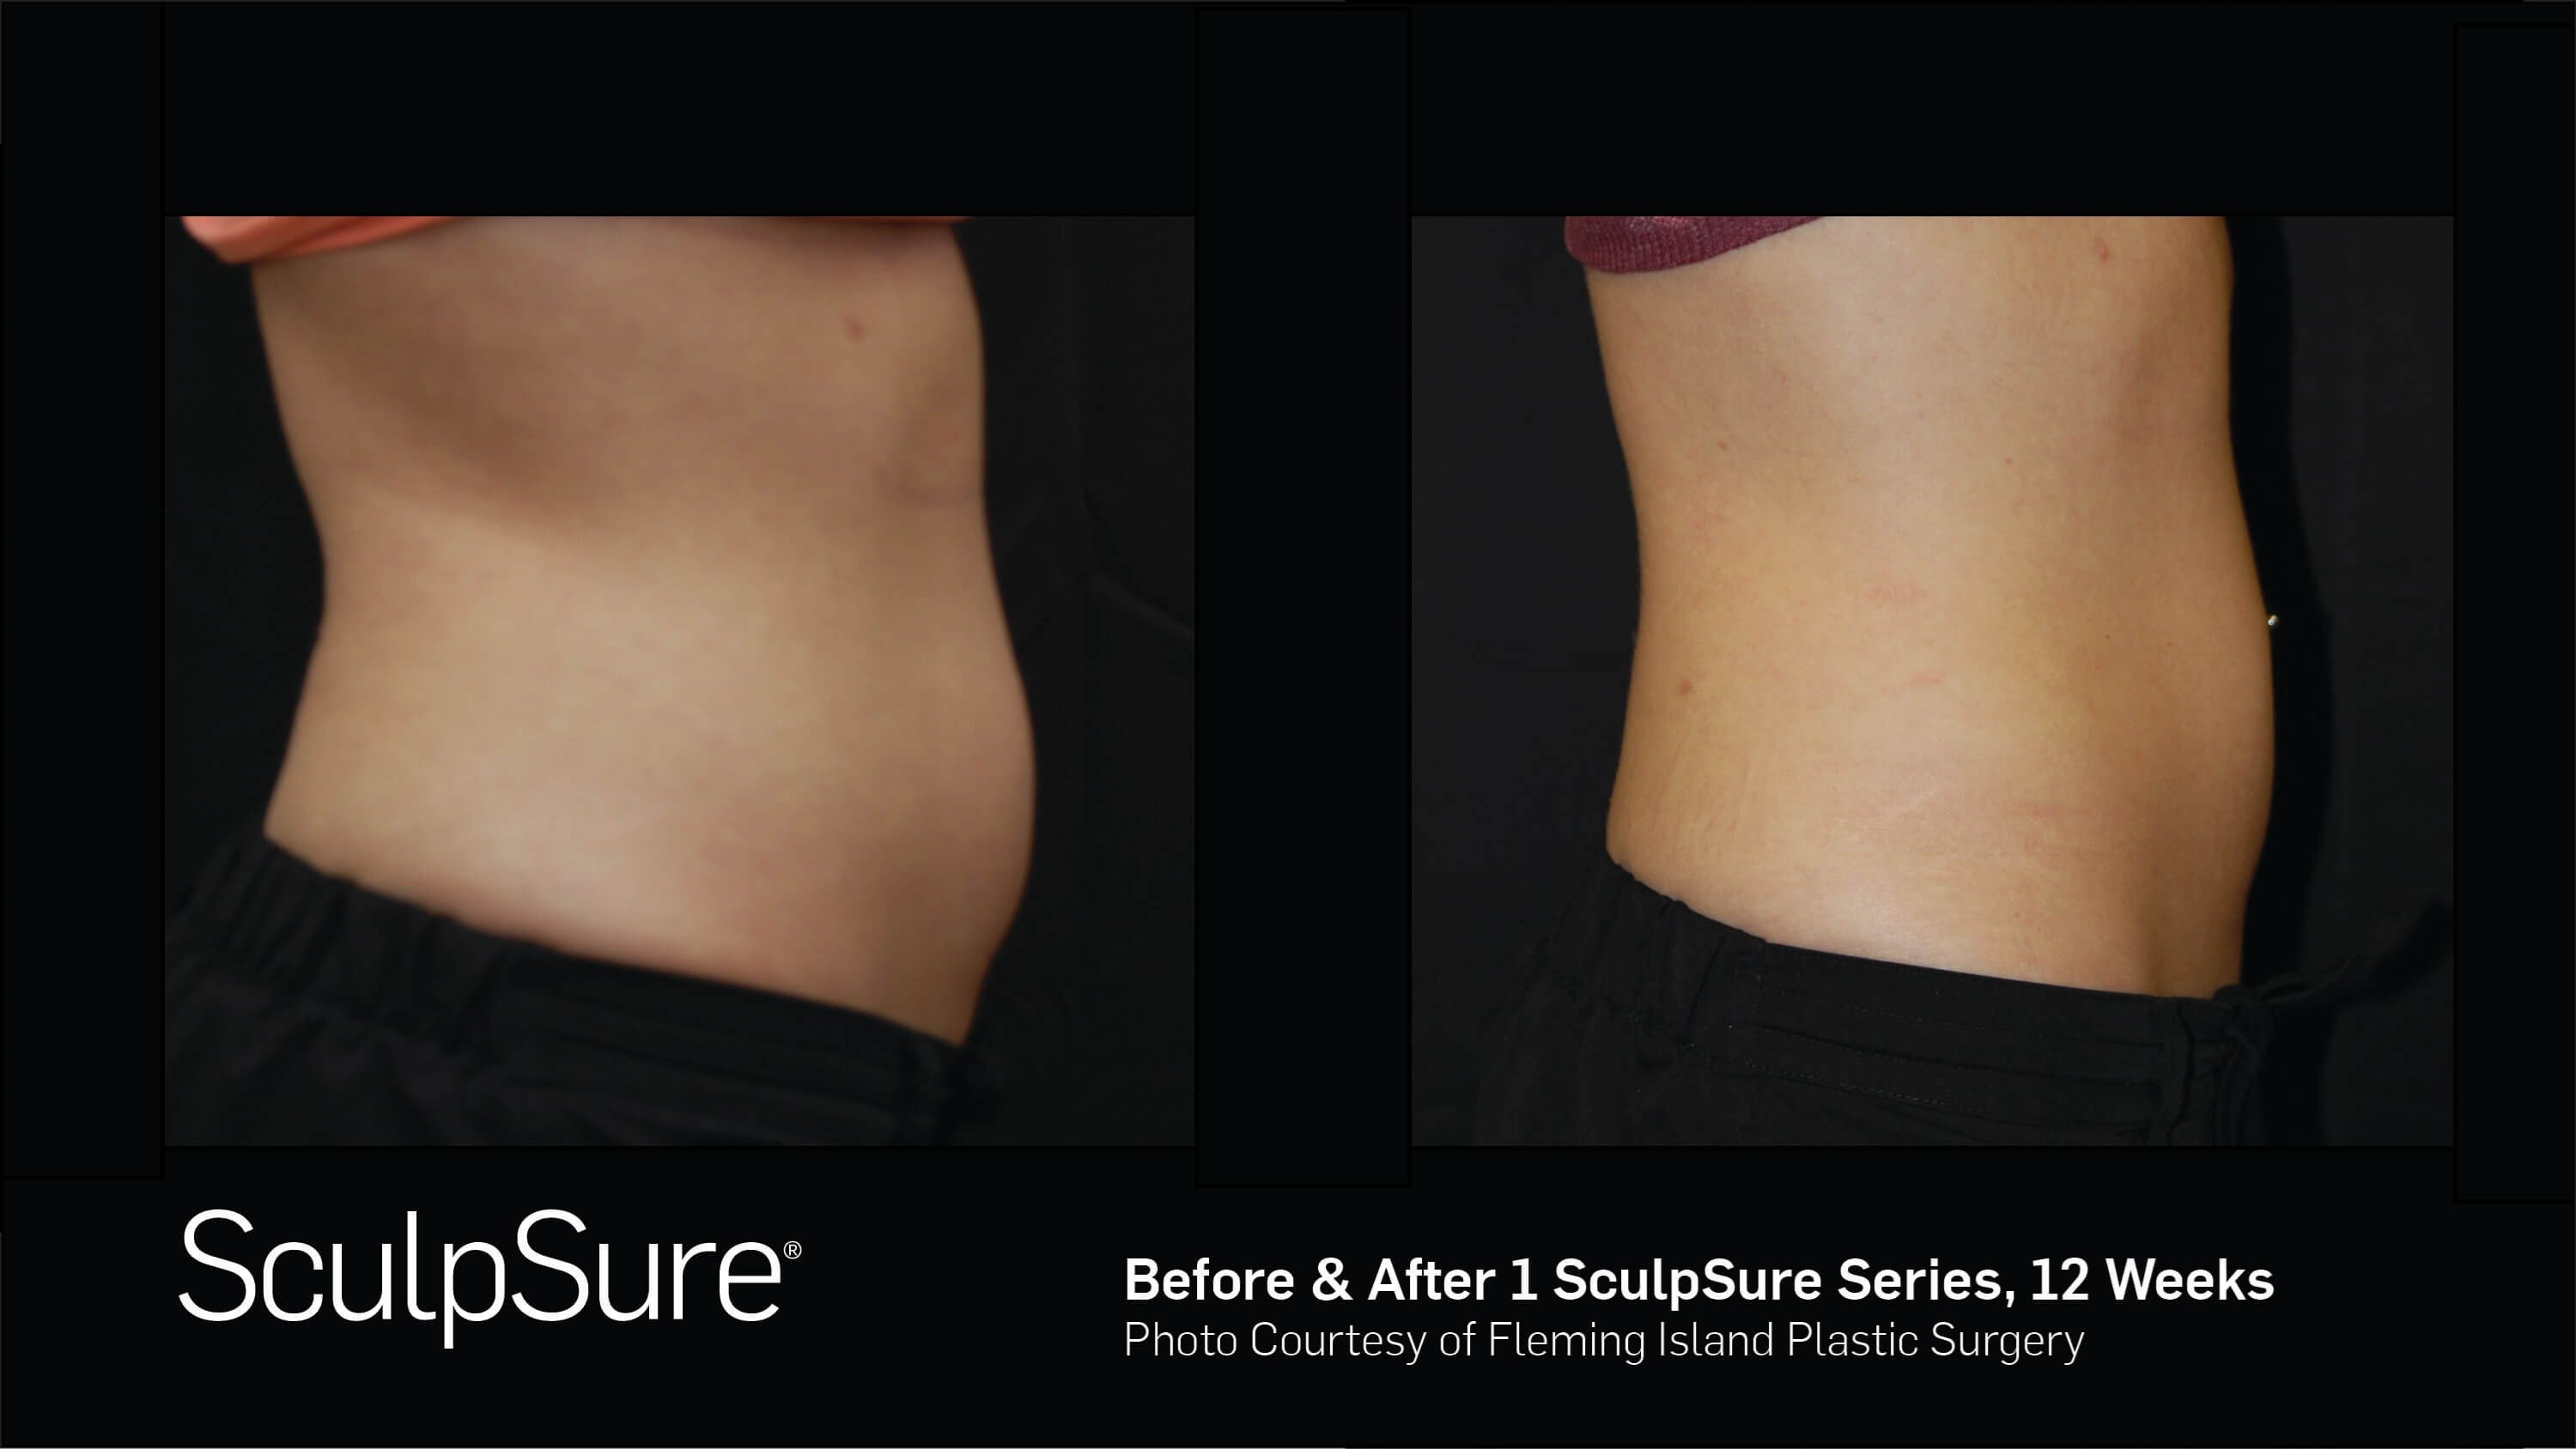 Before & After SculpSure R. Lateral View SculpSure